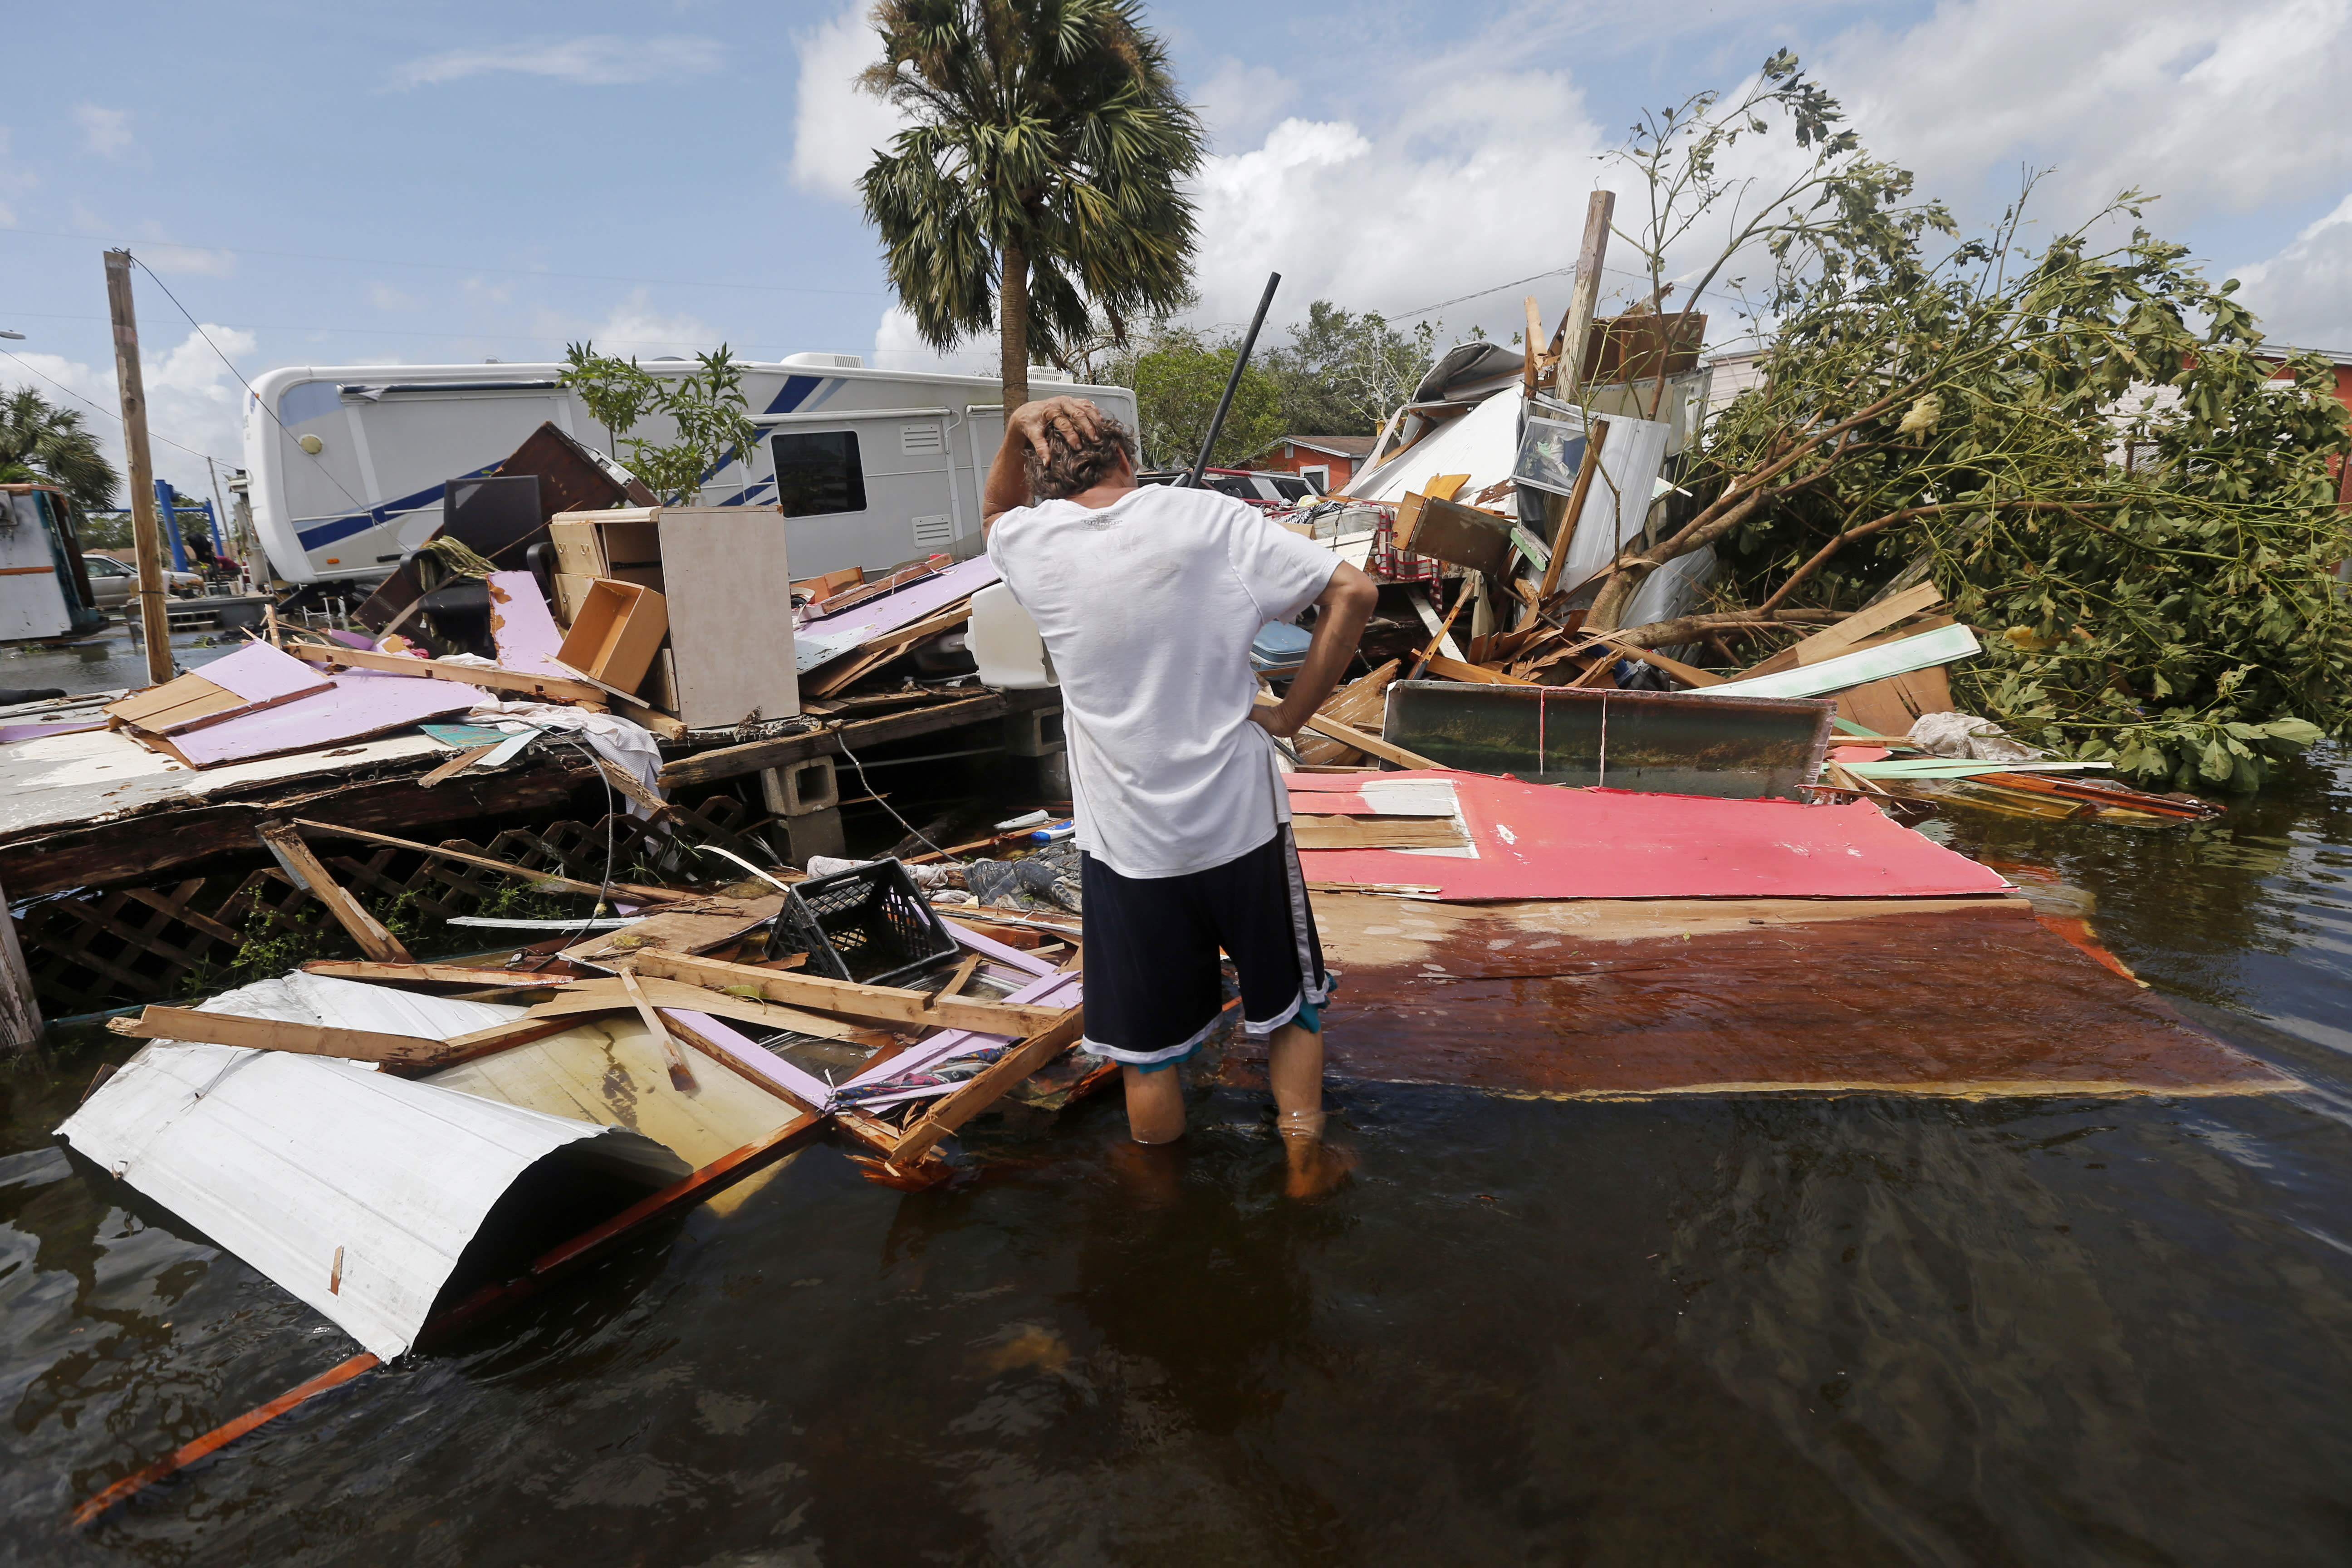 <p><strong>Immokalee</strong><br>Larry Dimas walks around his destroyed trailer, which he rents out to others, in the aftermath of Hurricane Irma in Immokalee, Fla., Sept. 11, 2017. His tenants evacuated and nobody was inside when it was destroyed. (Photo: Gerald Herbert/AP) </p>